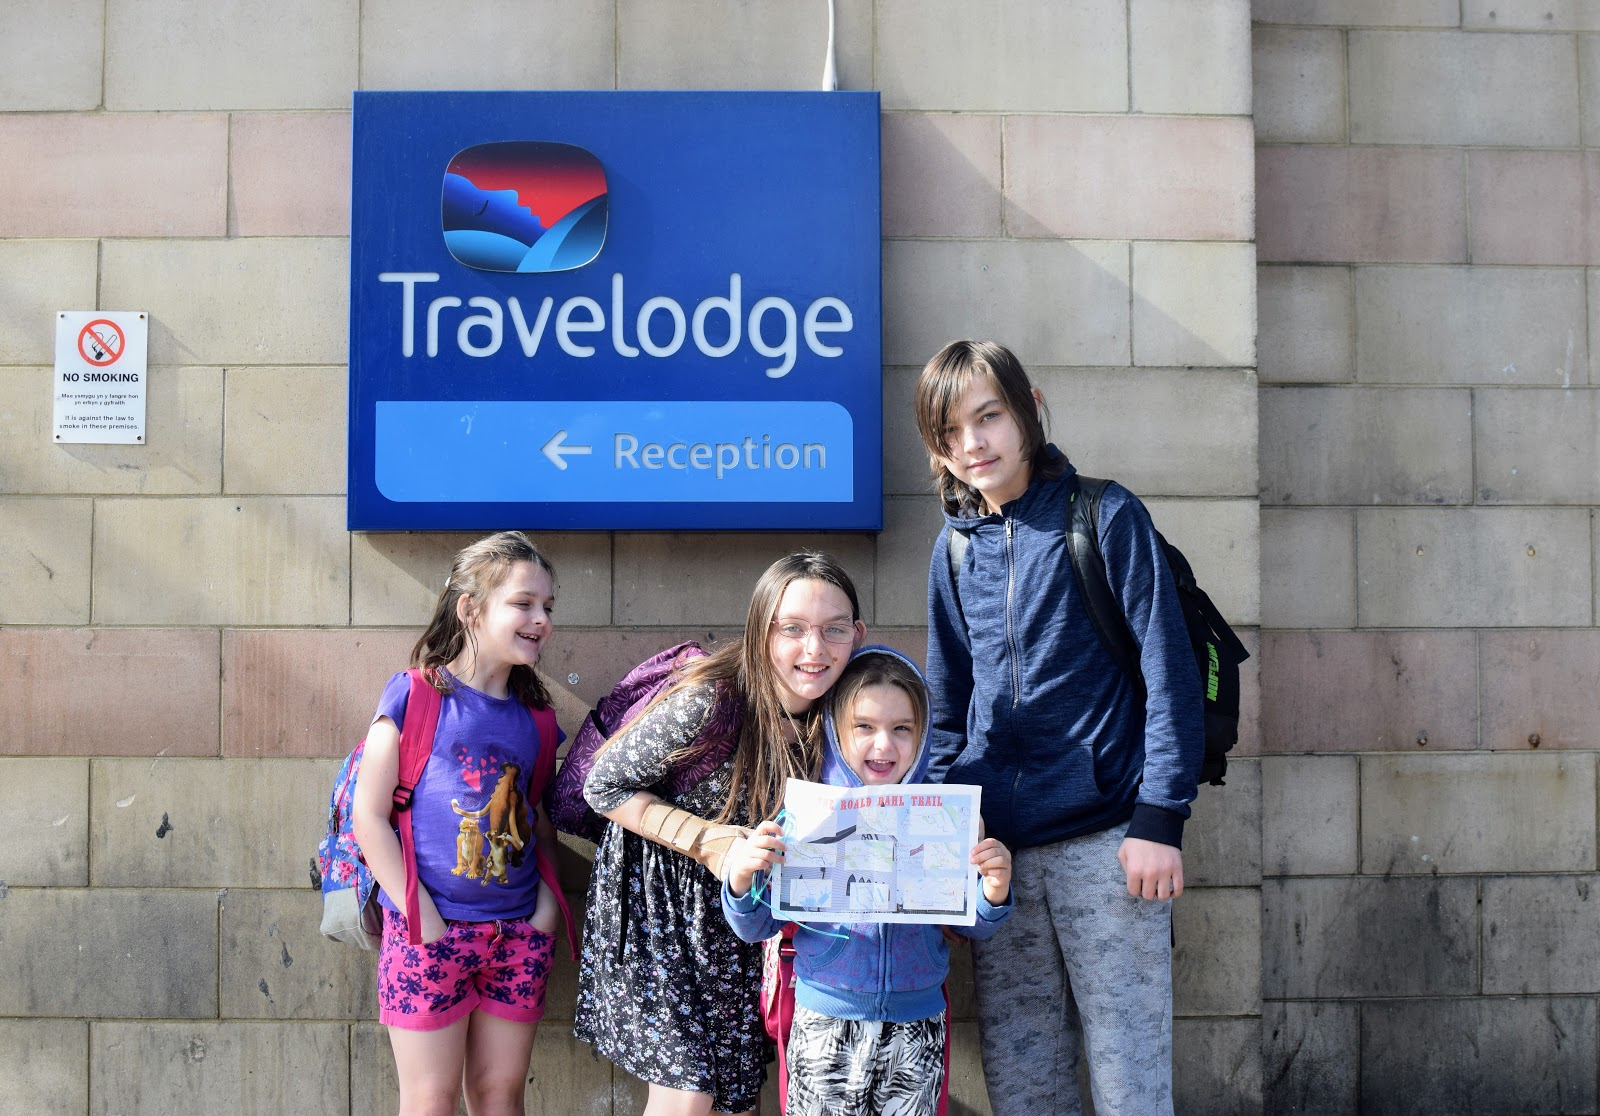 , The #LiteracyLegacy Roald Dahl Trail, Llandaff and Cardiff with Travelodge